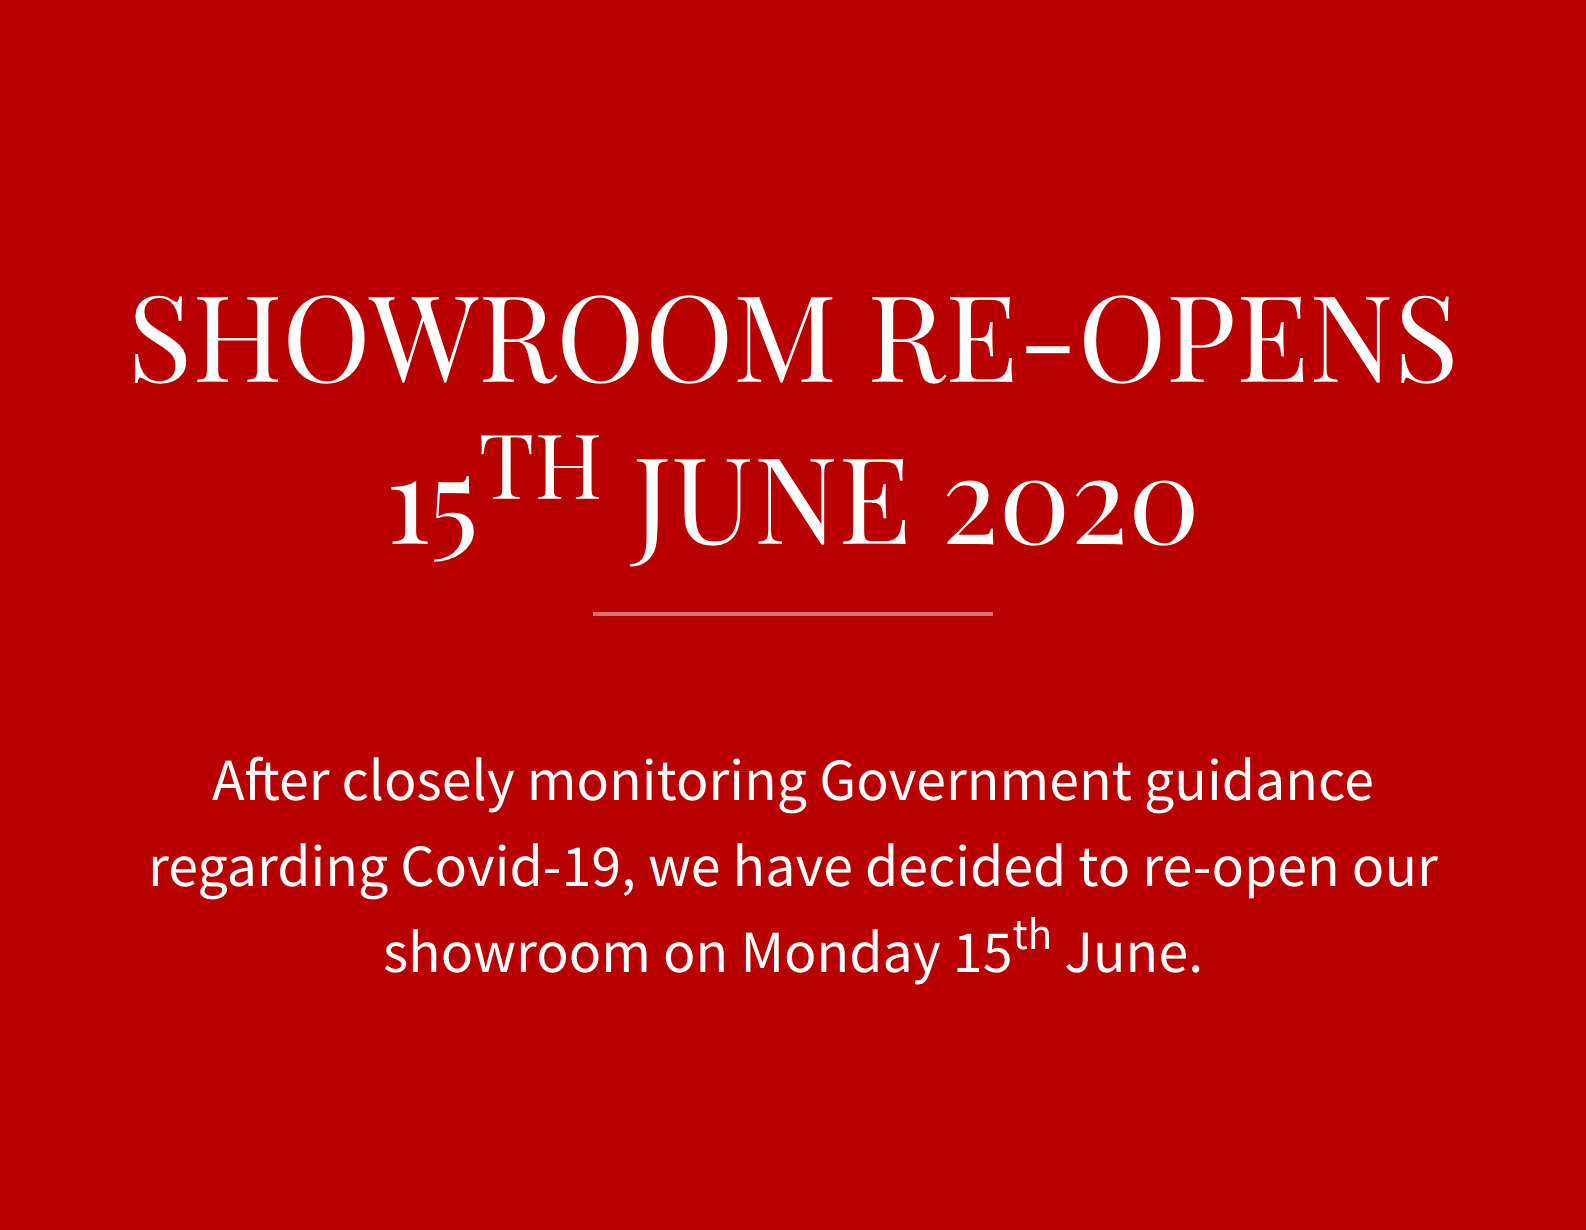 SHOWROOM RE-OPENS 15TH JUNE 2020. After closely monitoring Government guidance regarding Covid-19, we have decided to re-open our showroom on Monday 15th June.